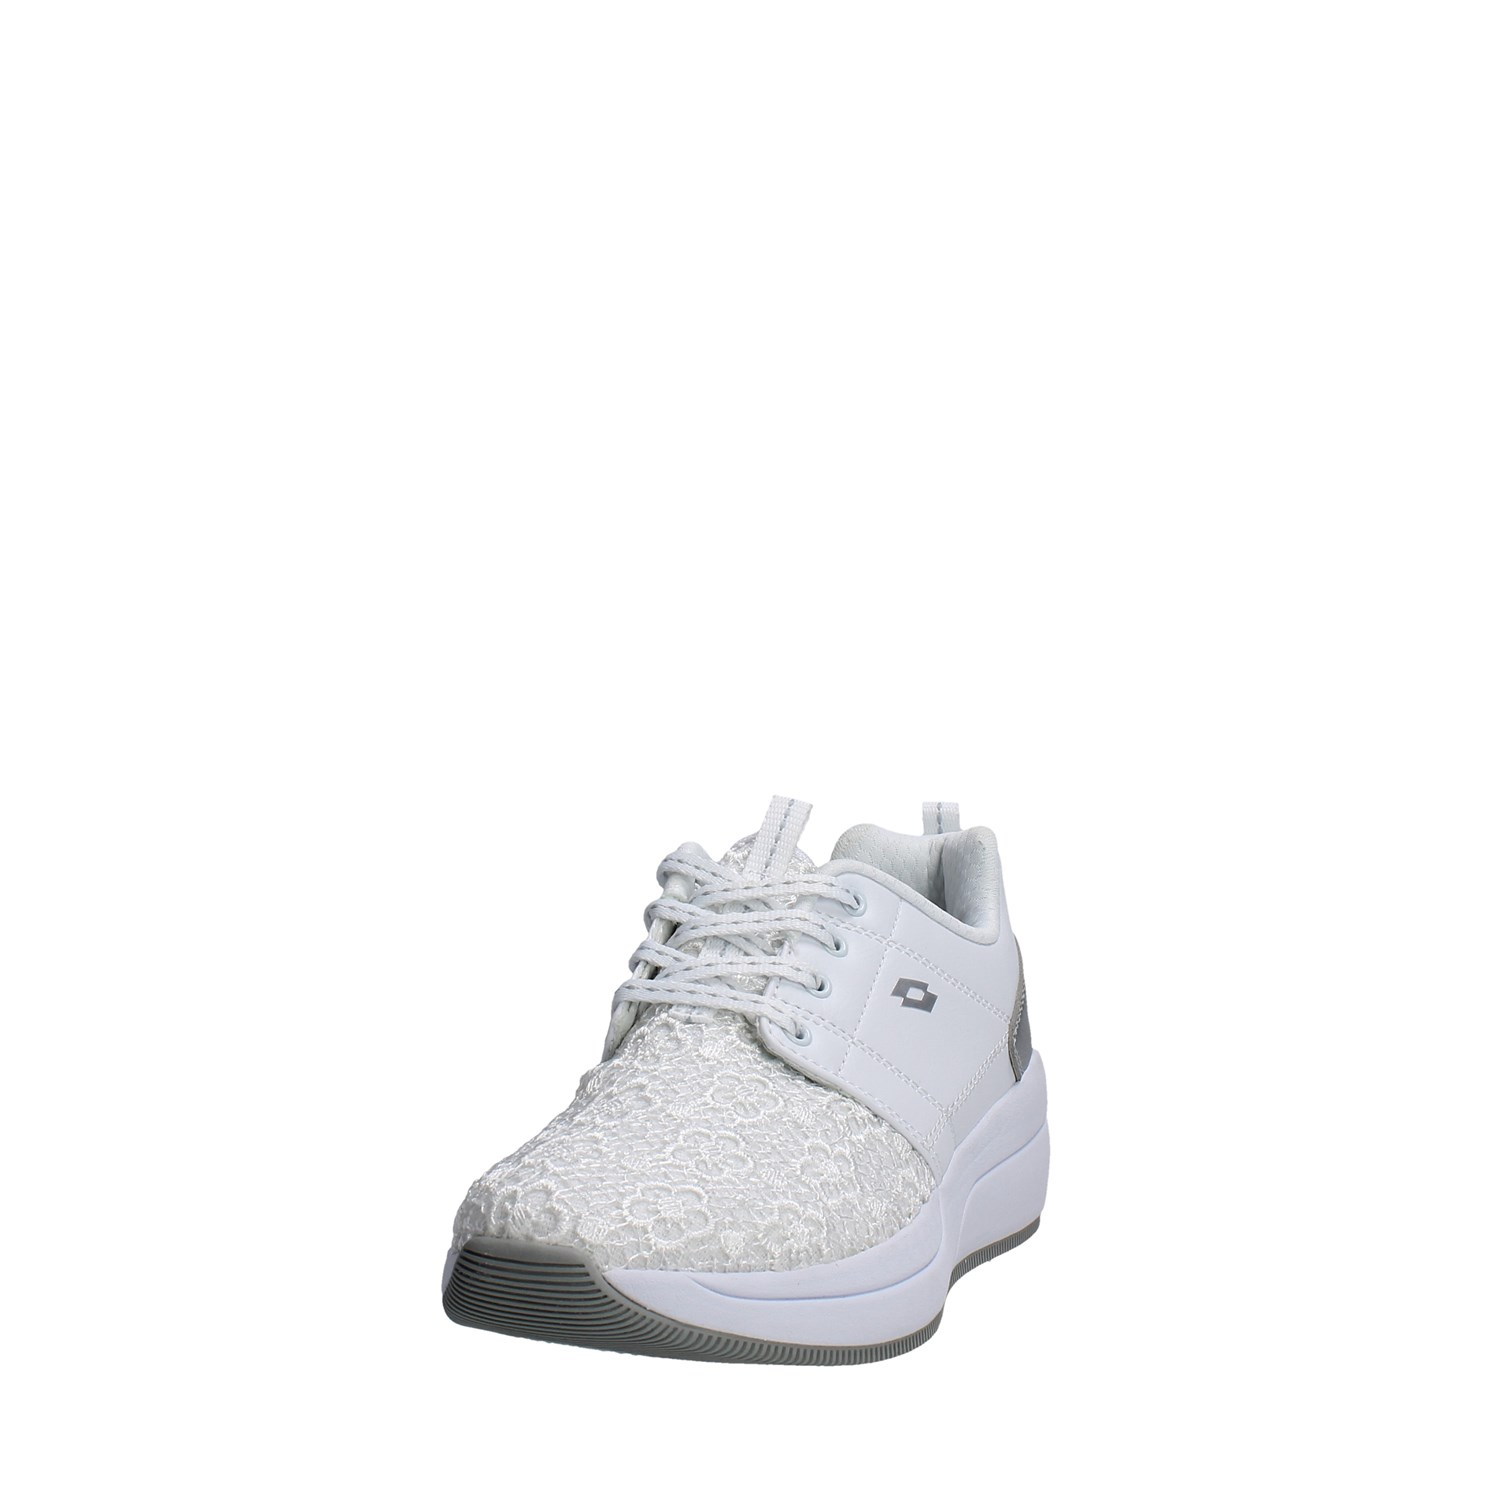 Lotto S7660 BIANCO Sneakers Bassa Donna Primavera Estate  fffaa422086